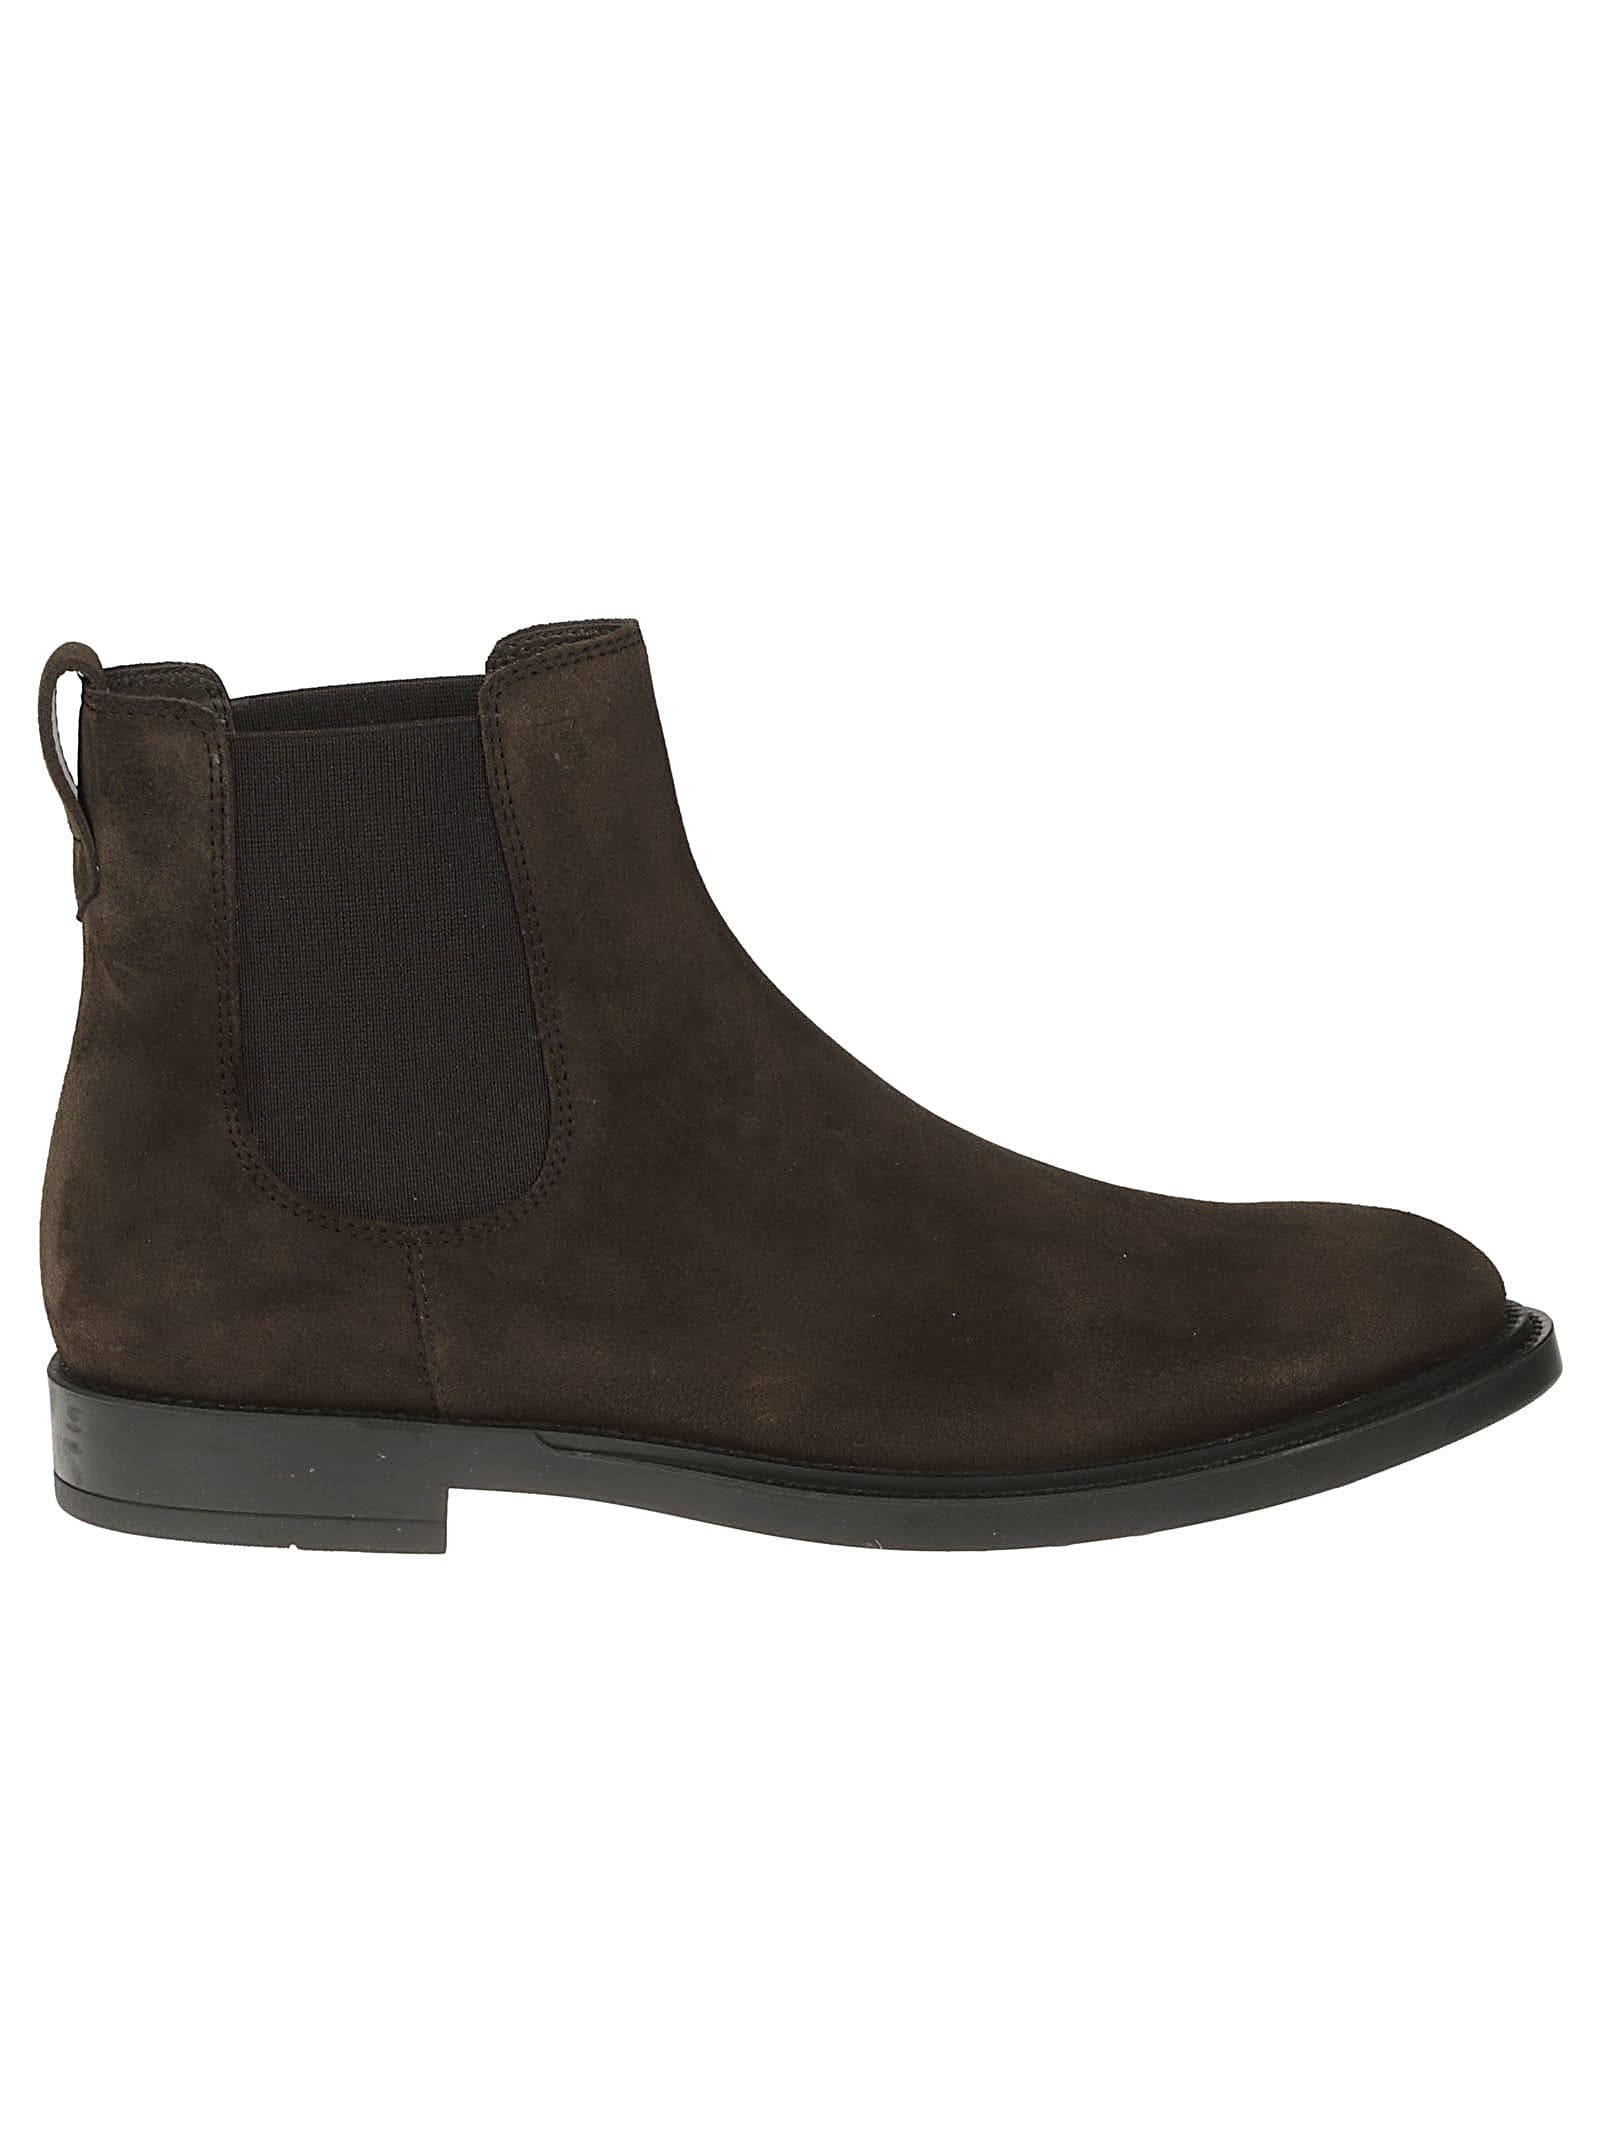 Tods Elastic Side Panel Chelsea Boots